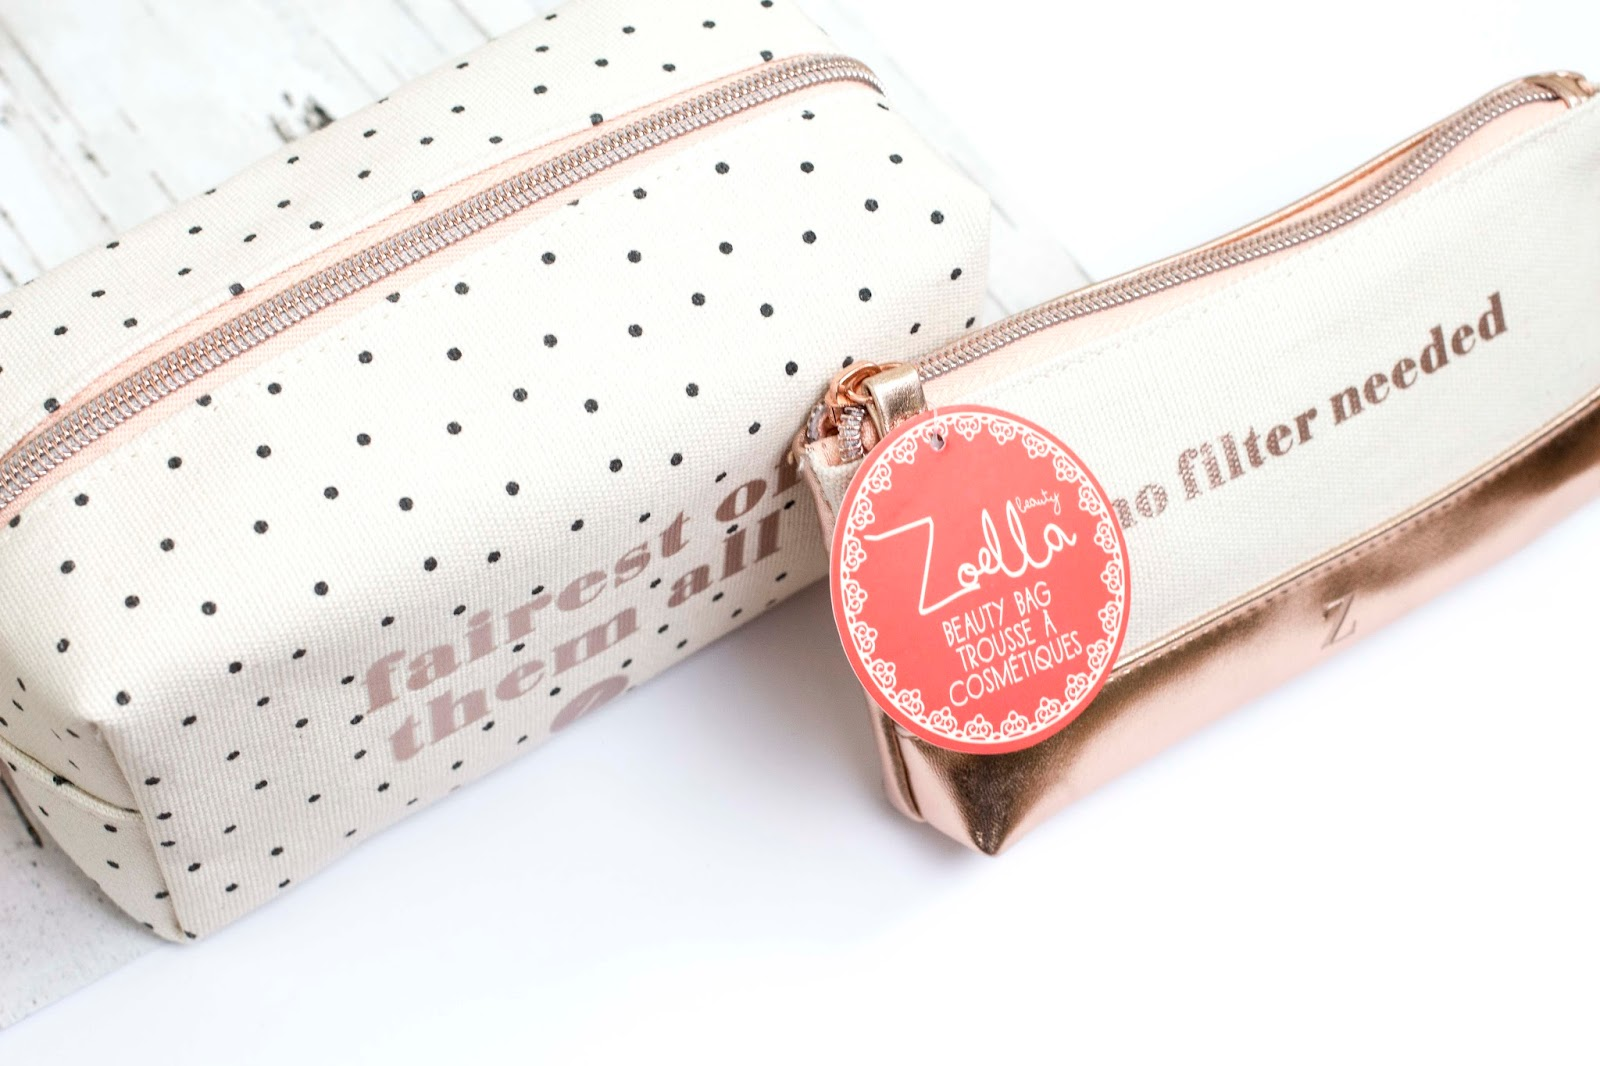 Zoella Fairest Of Them All Midi Cosmetic Bag 9 The First I Want To Talk About Is Which A Gorgeous